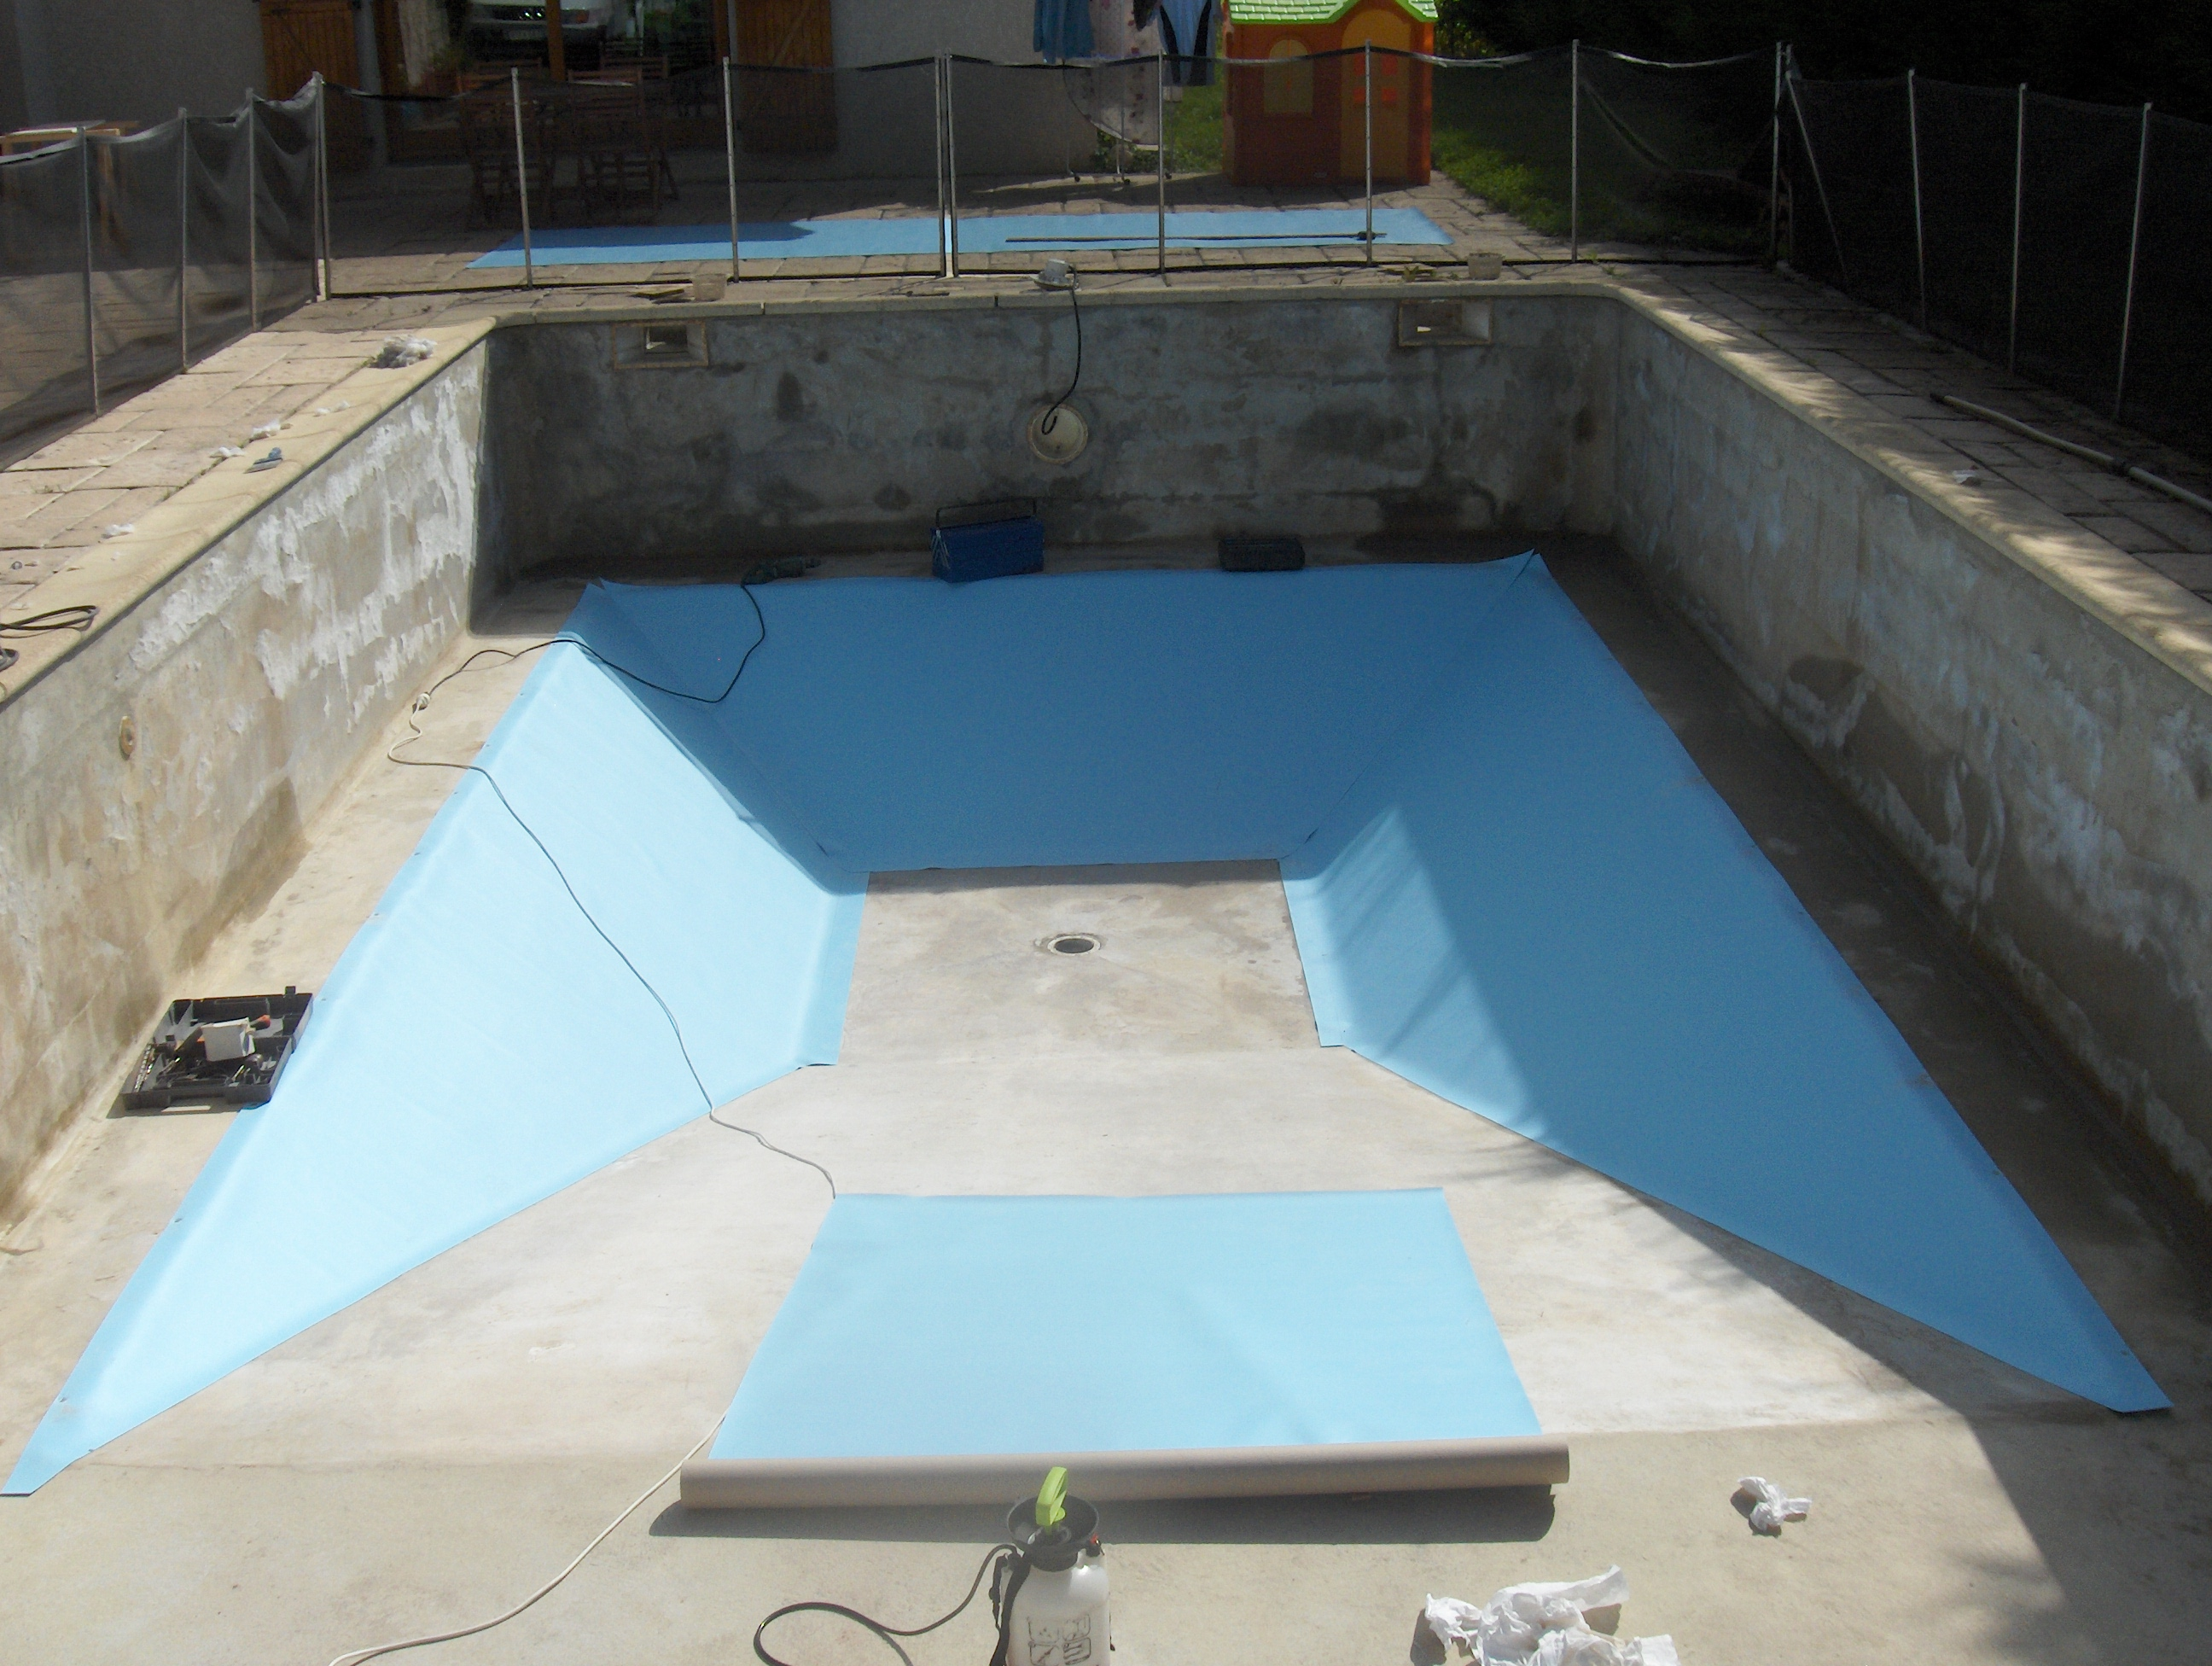 Prix pvc arme piscine photos de conception de maison for Prix liner pour piscine